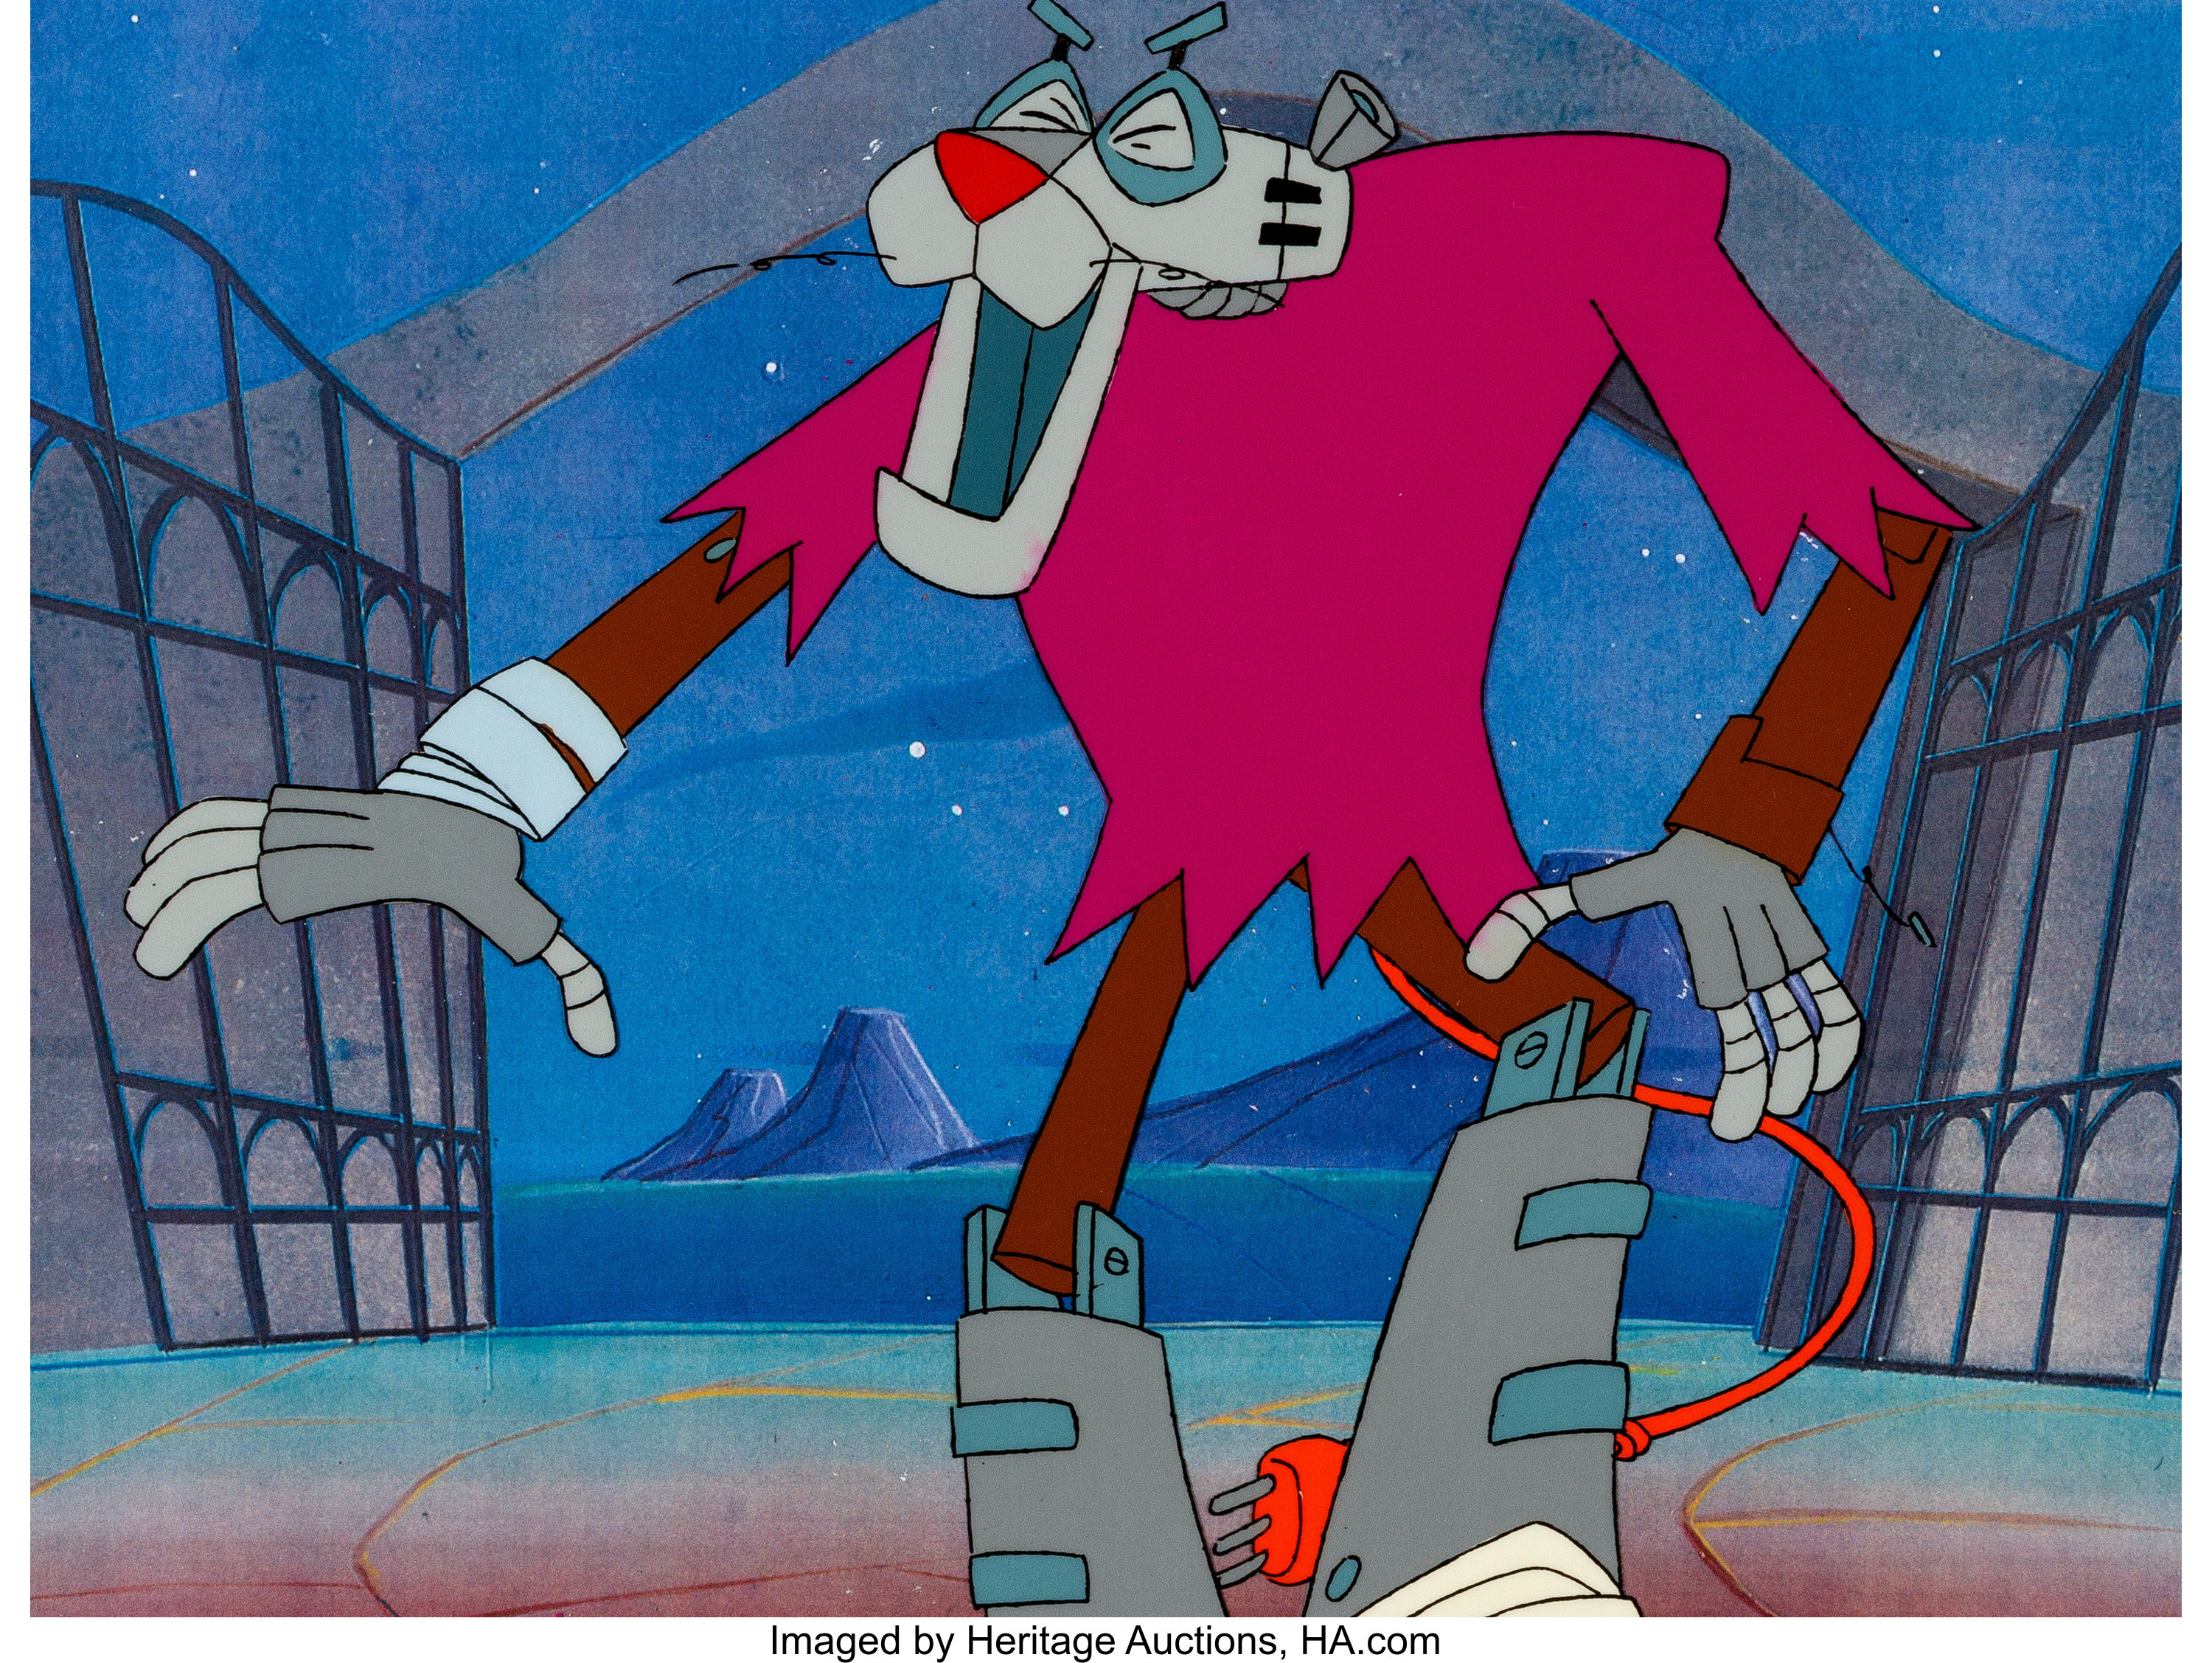 1993 PINK PANTHER ORIGINAL ANIMATION CEL PAINTED PRODUCTION ART ANIMATED SHOW